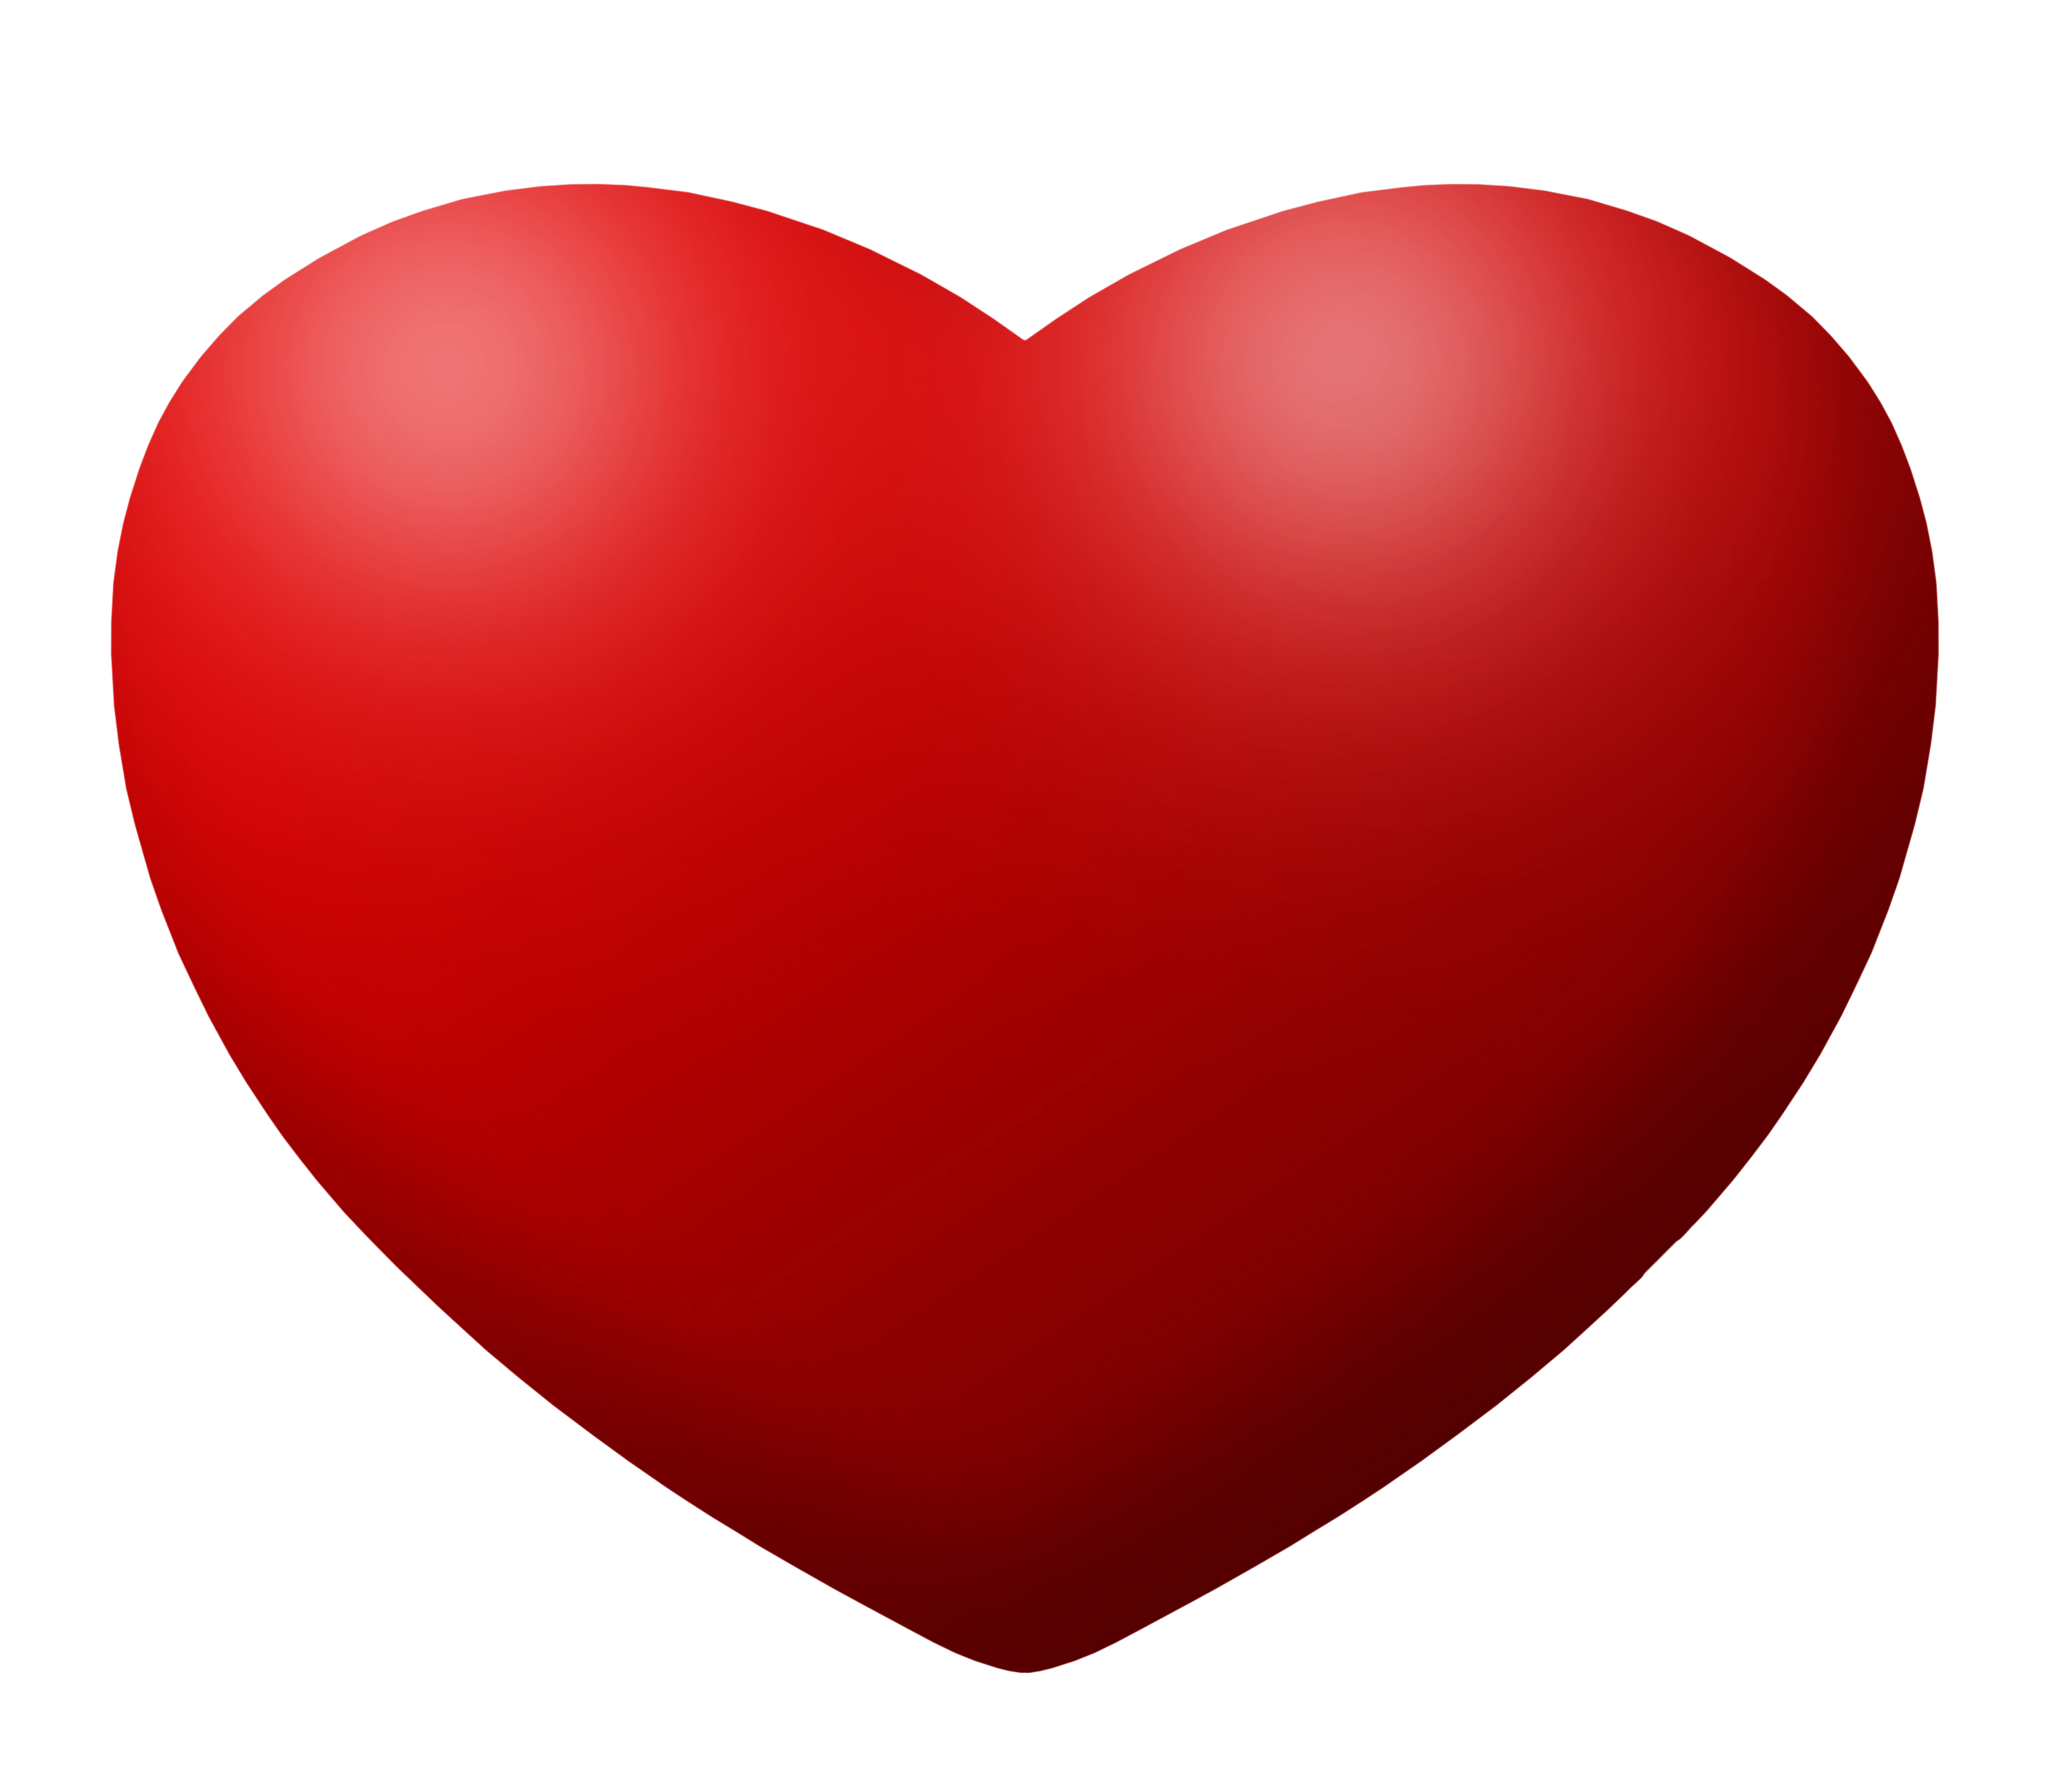 Heart PNG image, free download - Heart PNG HD